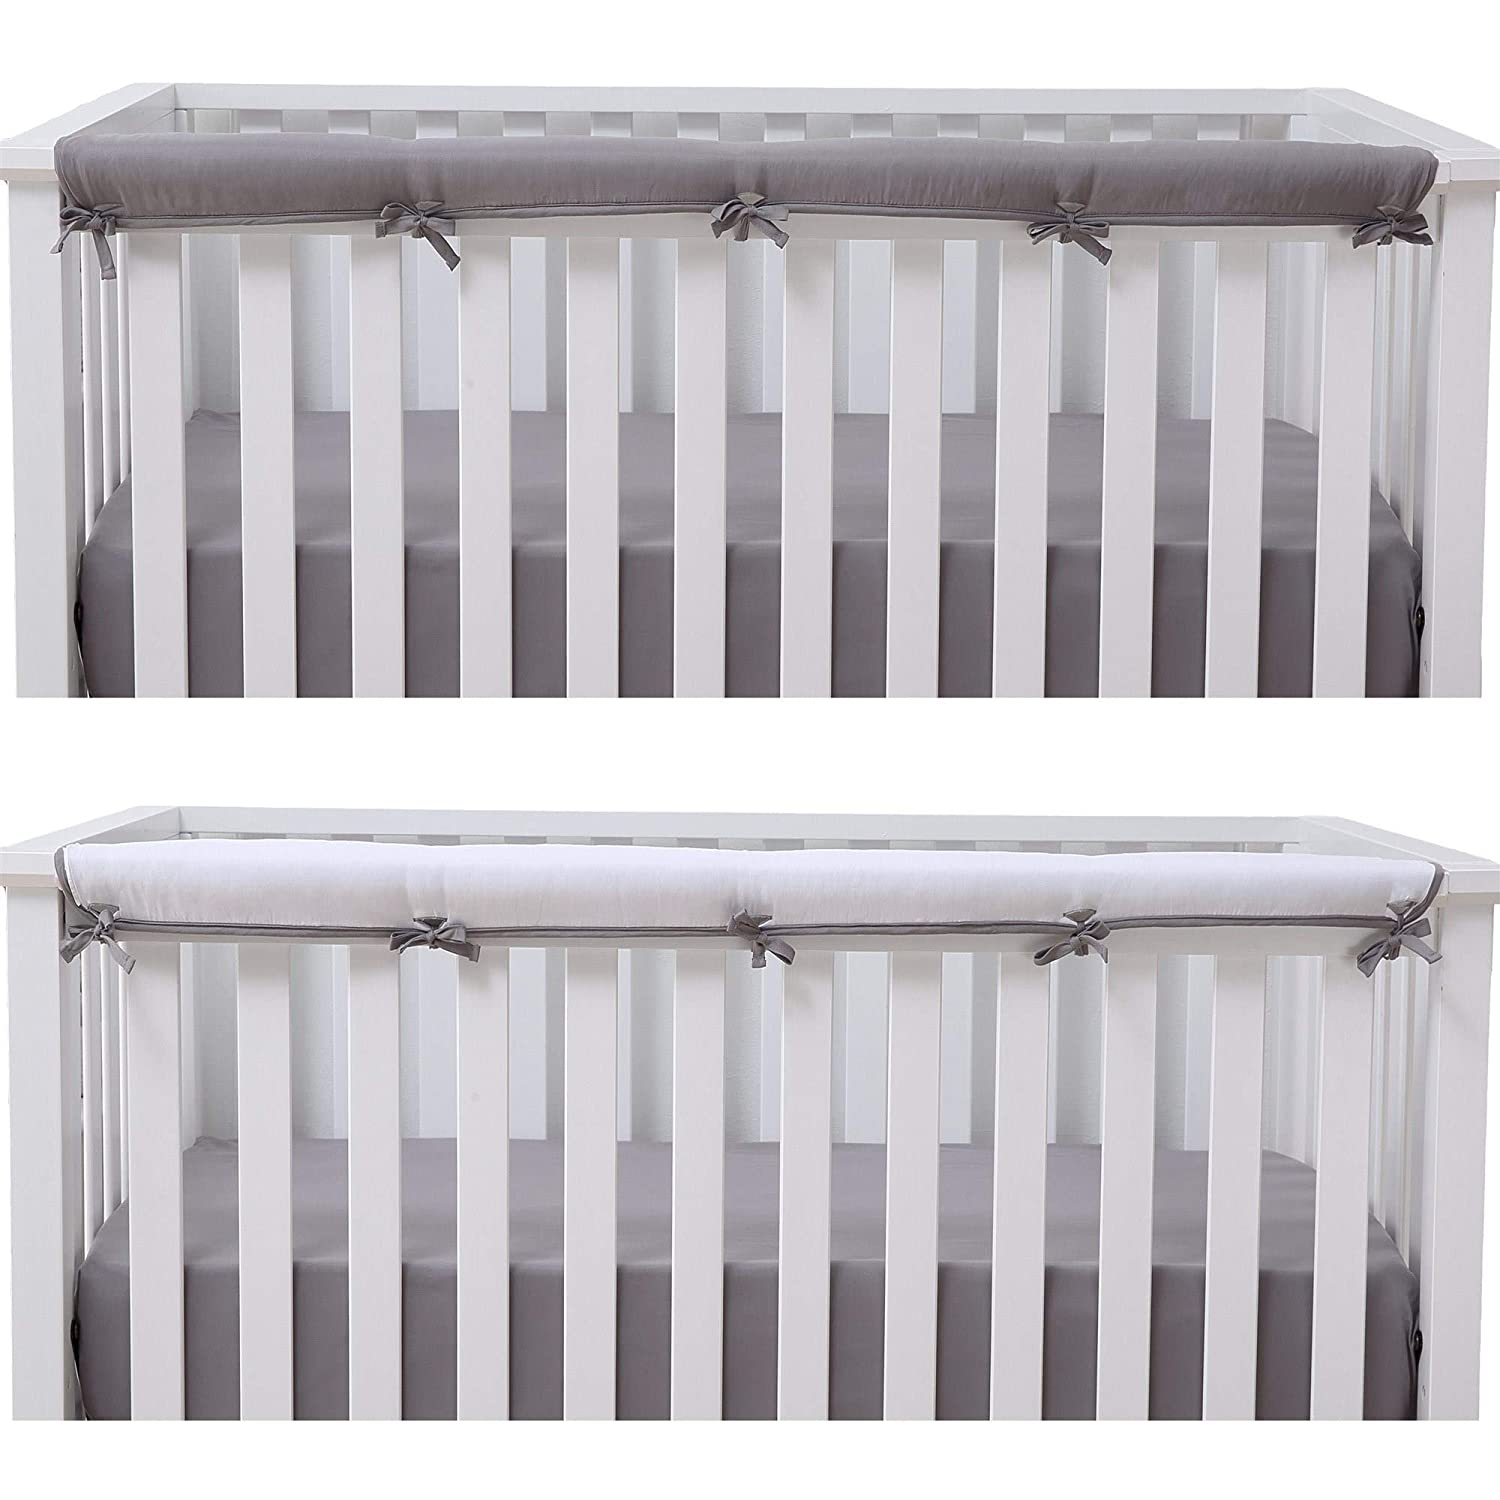 Amazon Com Belsden 1 Pack Baby Safe Crib Rail Cover For Long Front Rail Reversible Breathable Padded Crib Teething Guard And Protector Measuring Up To 8 Round Gray And White Colors Baby